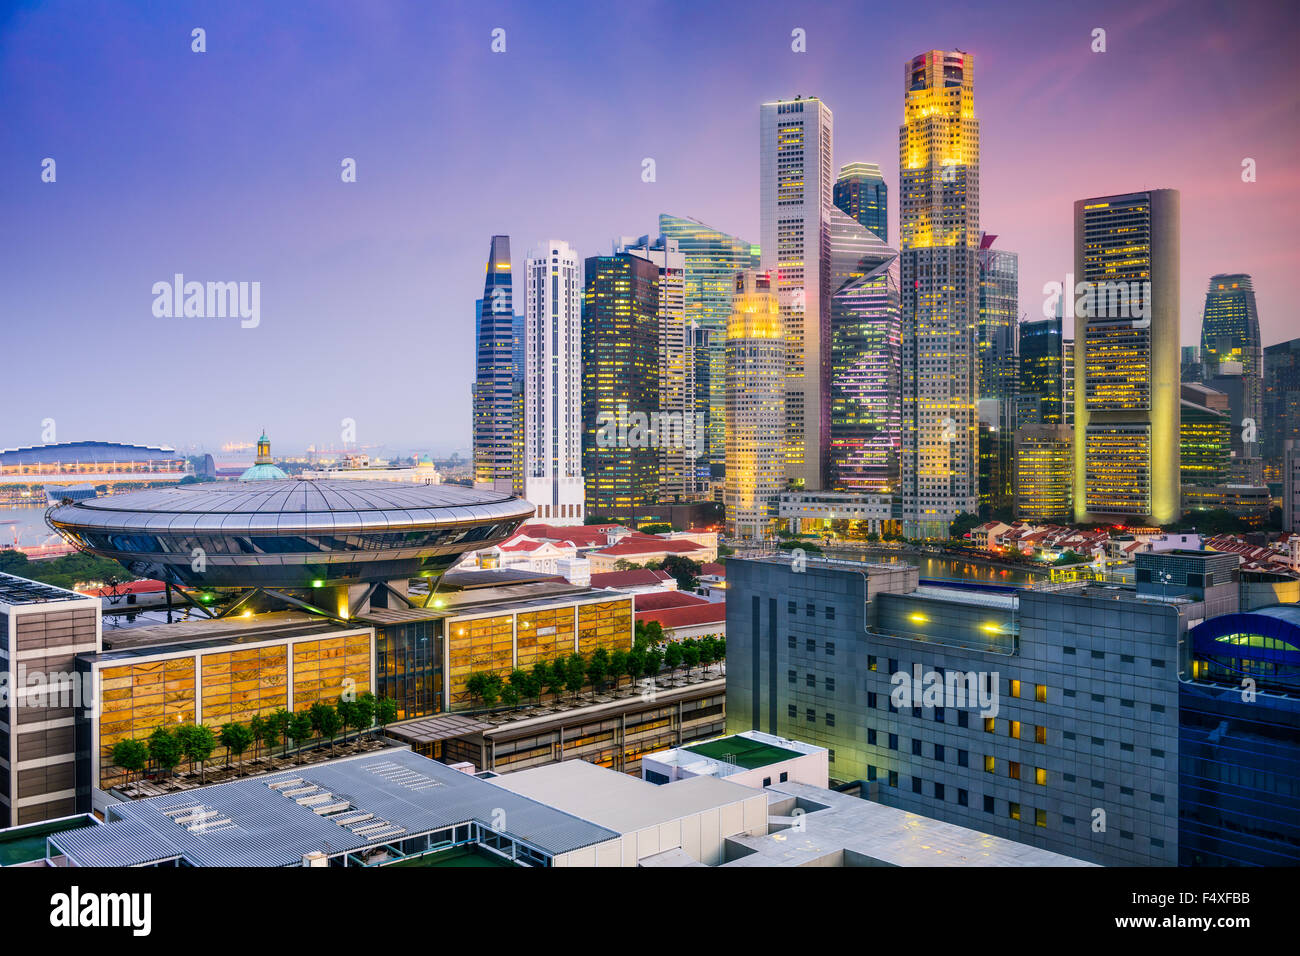 Skyline von Singapur. Stockbild